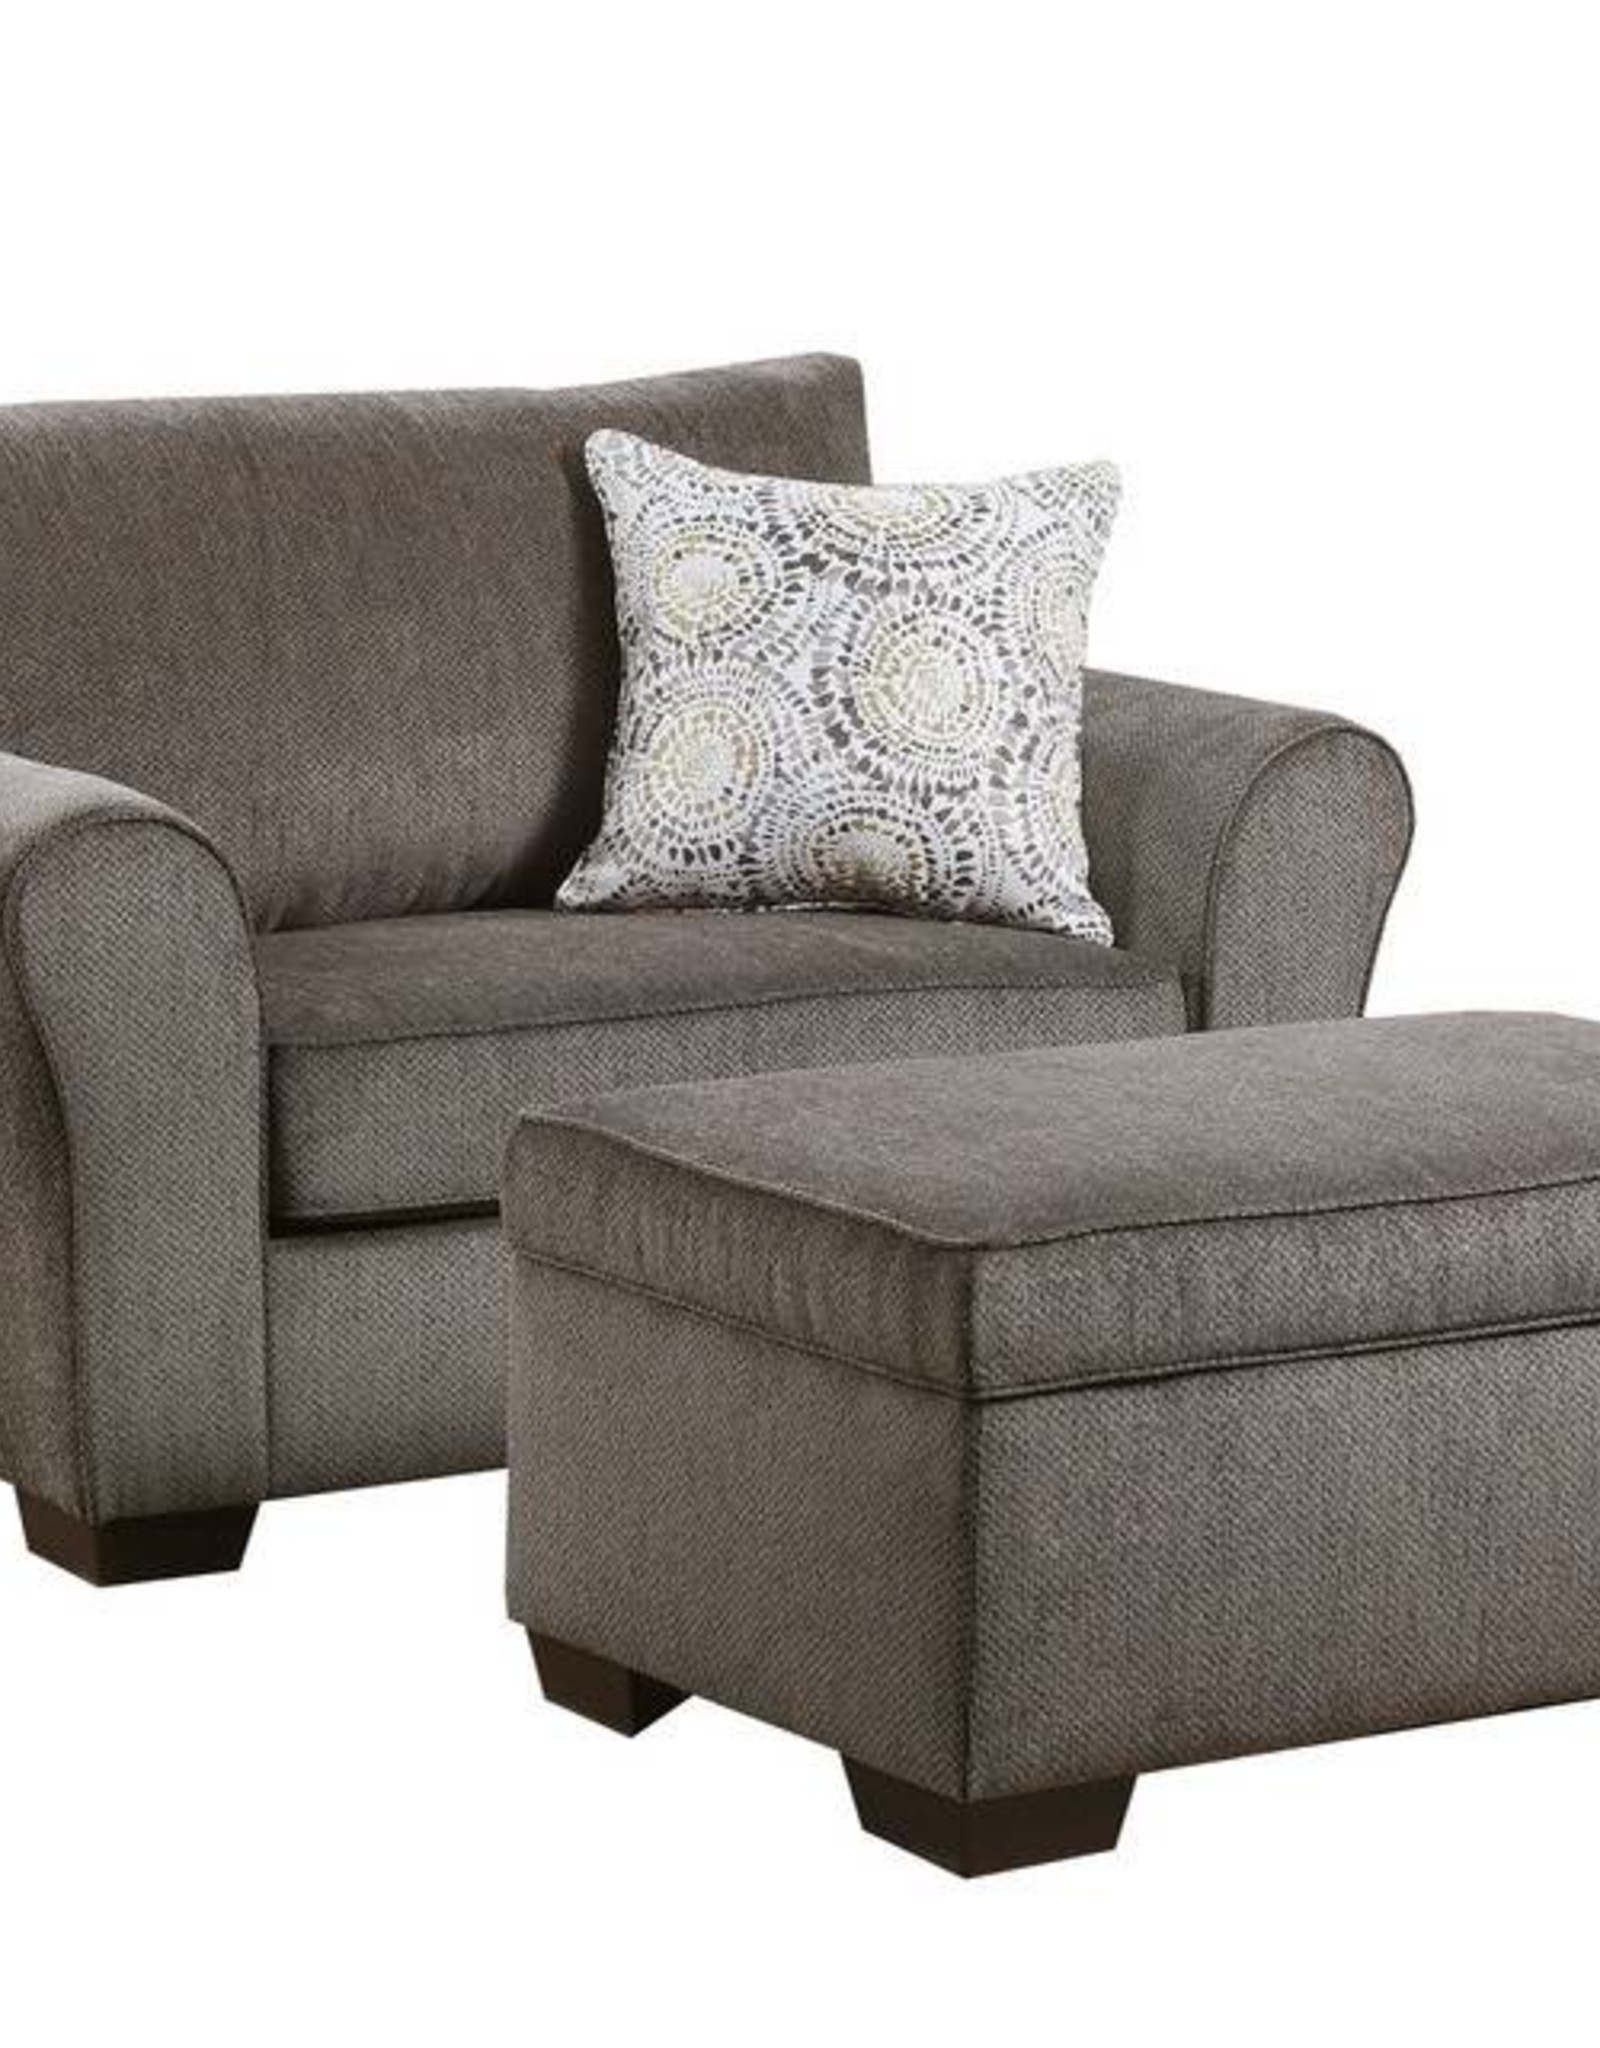 United Harlow Ash Chair 1/2 and Ottoman